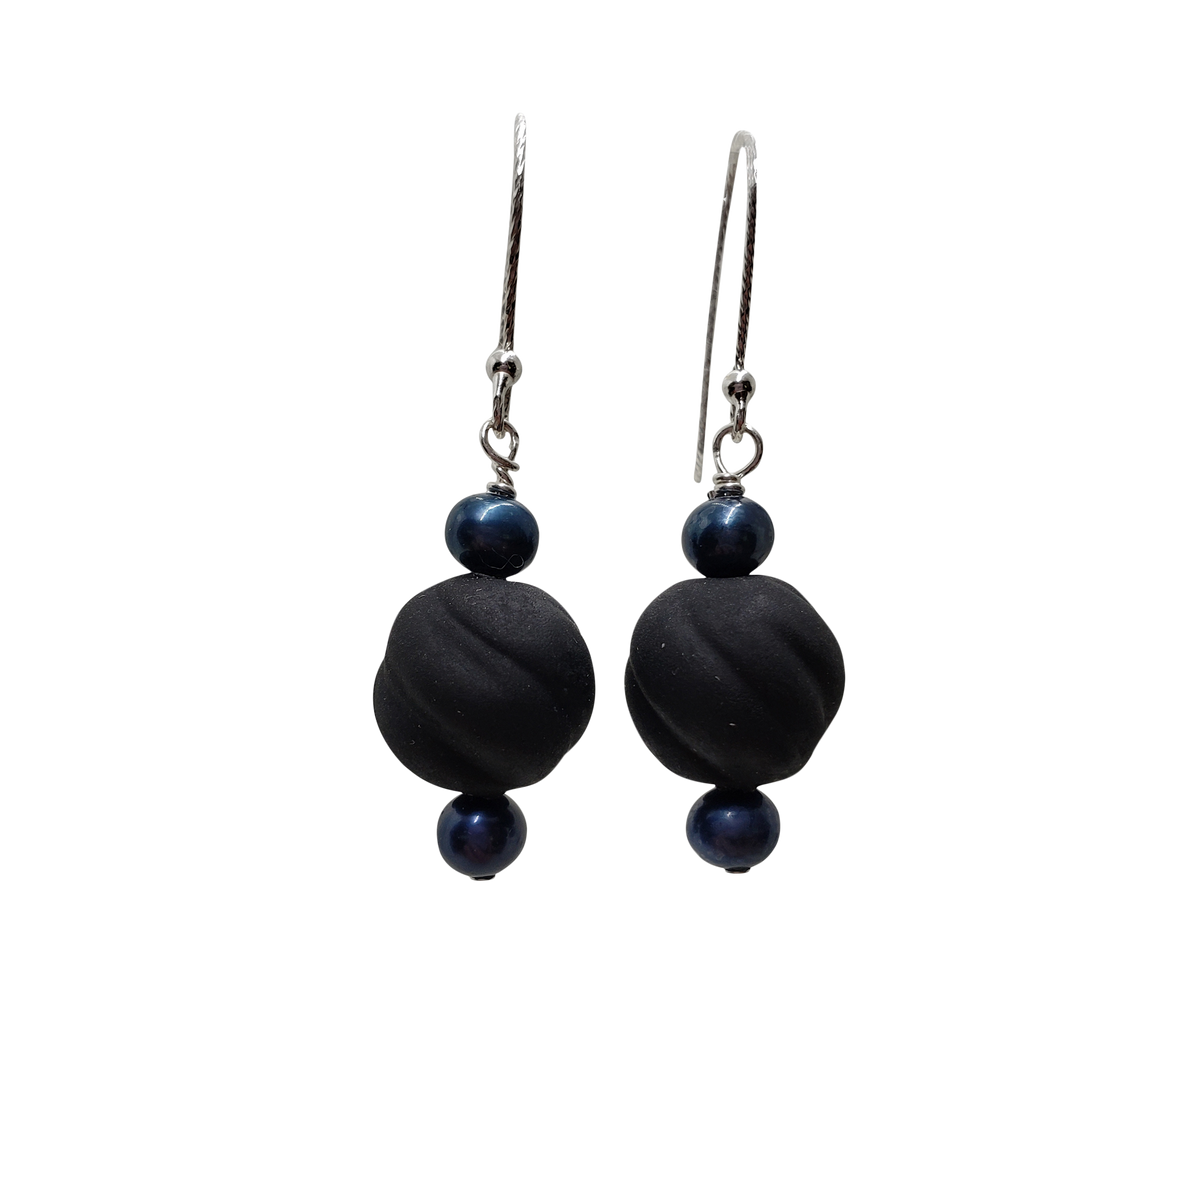 Black Glass & Pearls Earrings